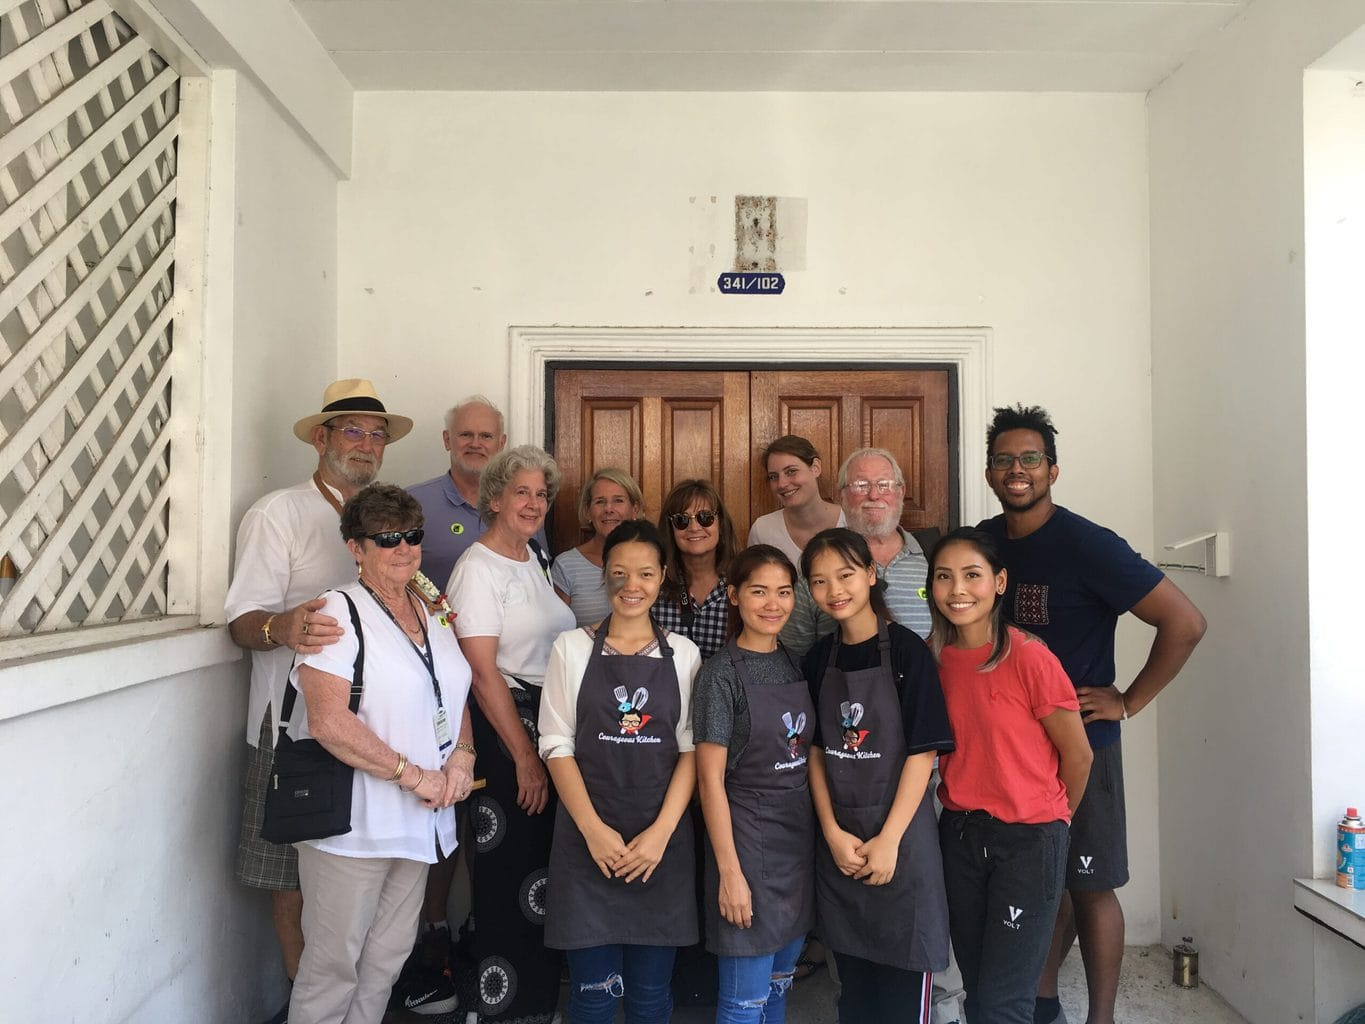 Participating in this Thai cooking class in Bangkok is great way to learn to prepare Thai dishes at home as well as give back to locals in need.